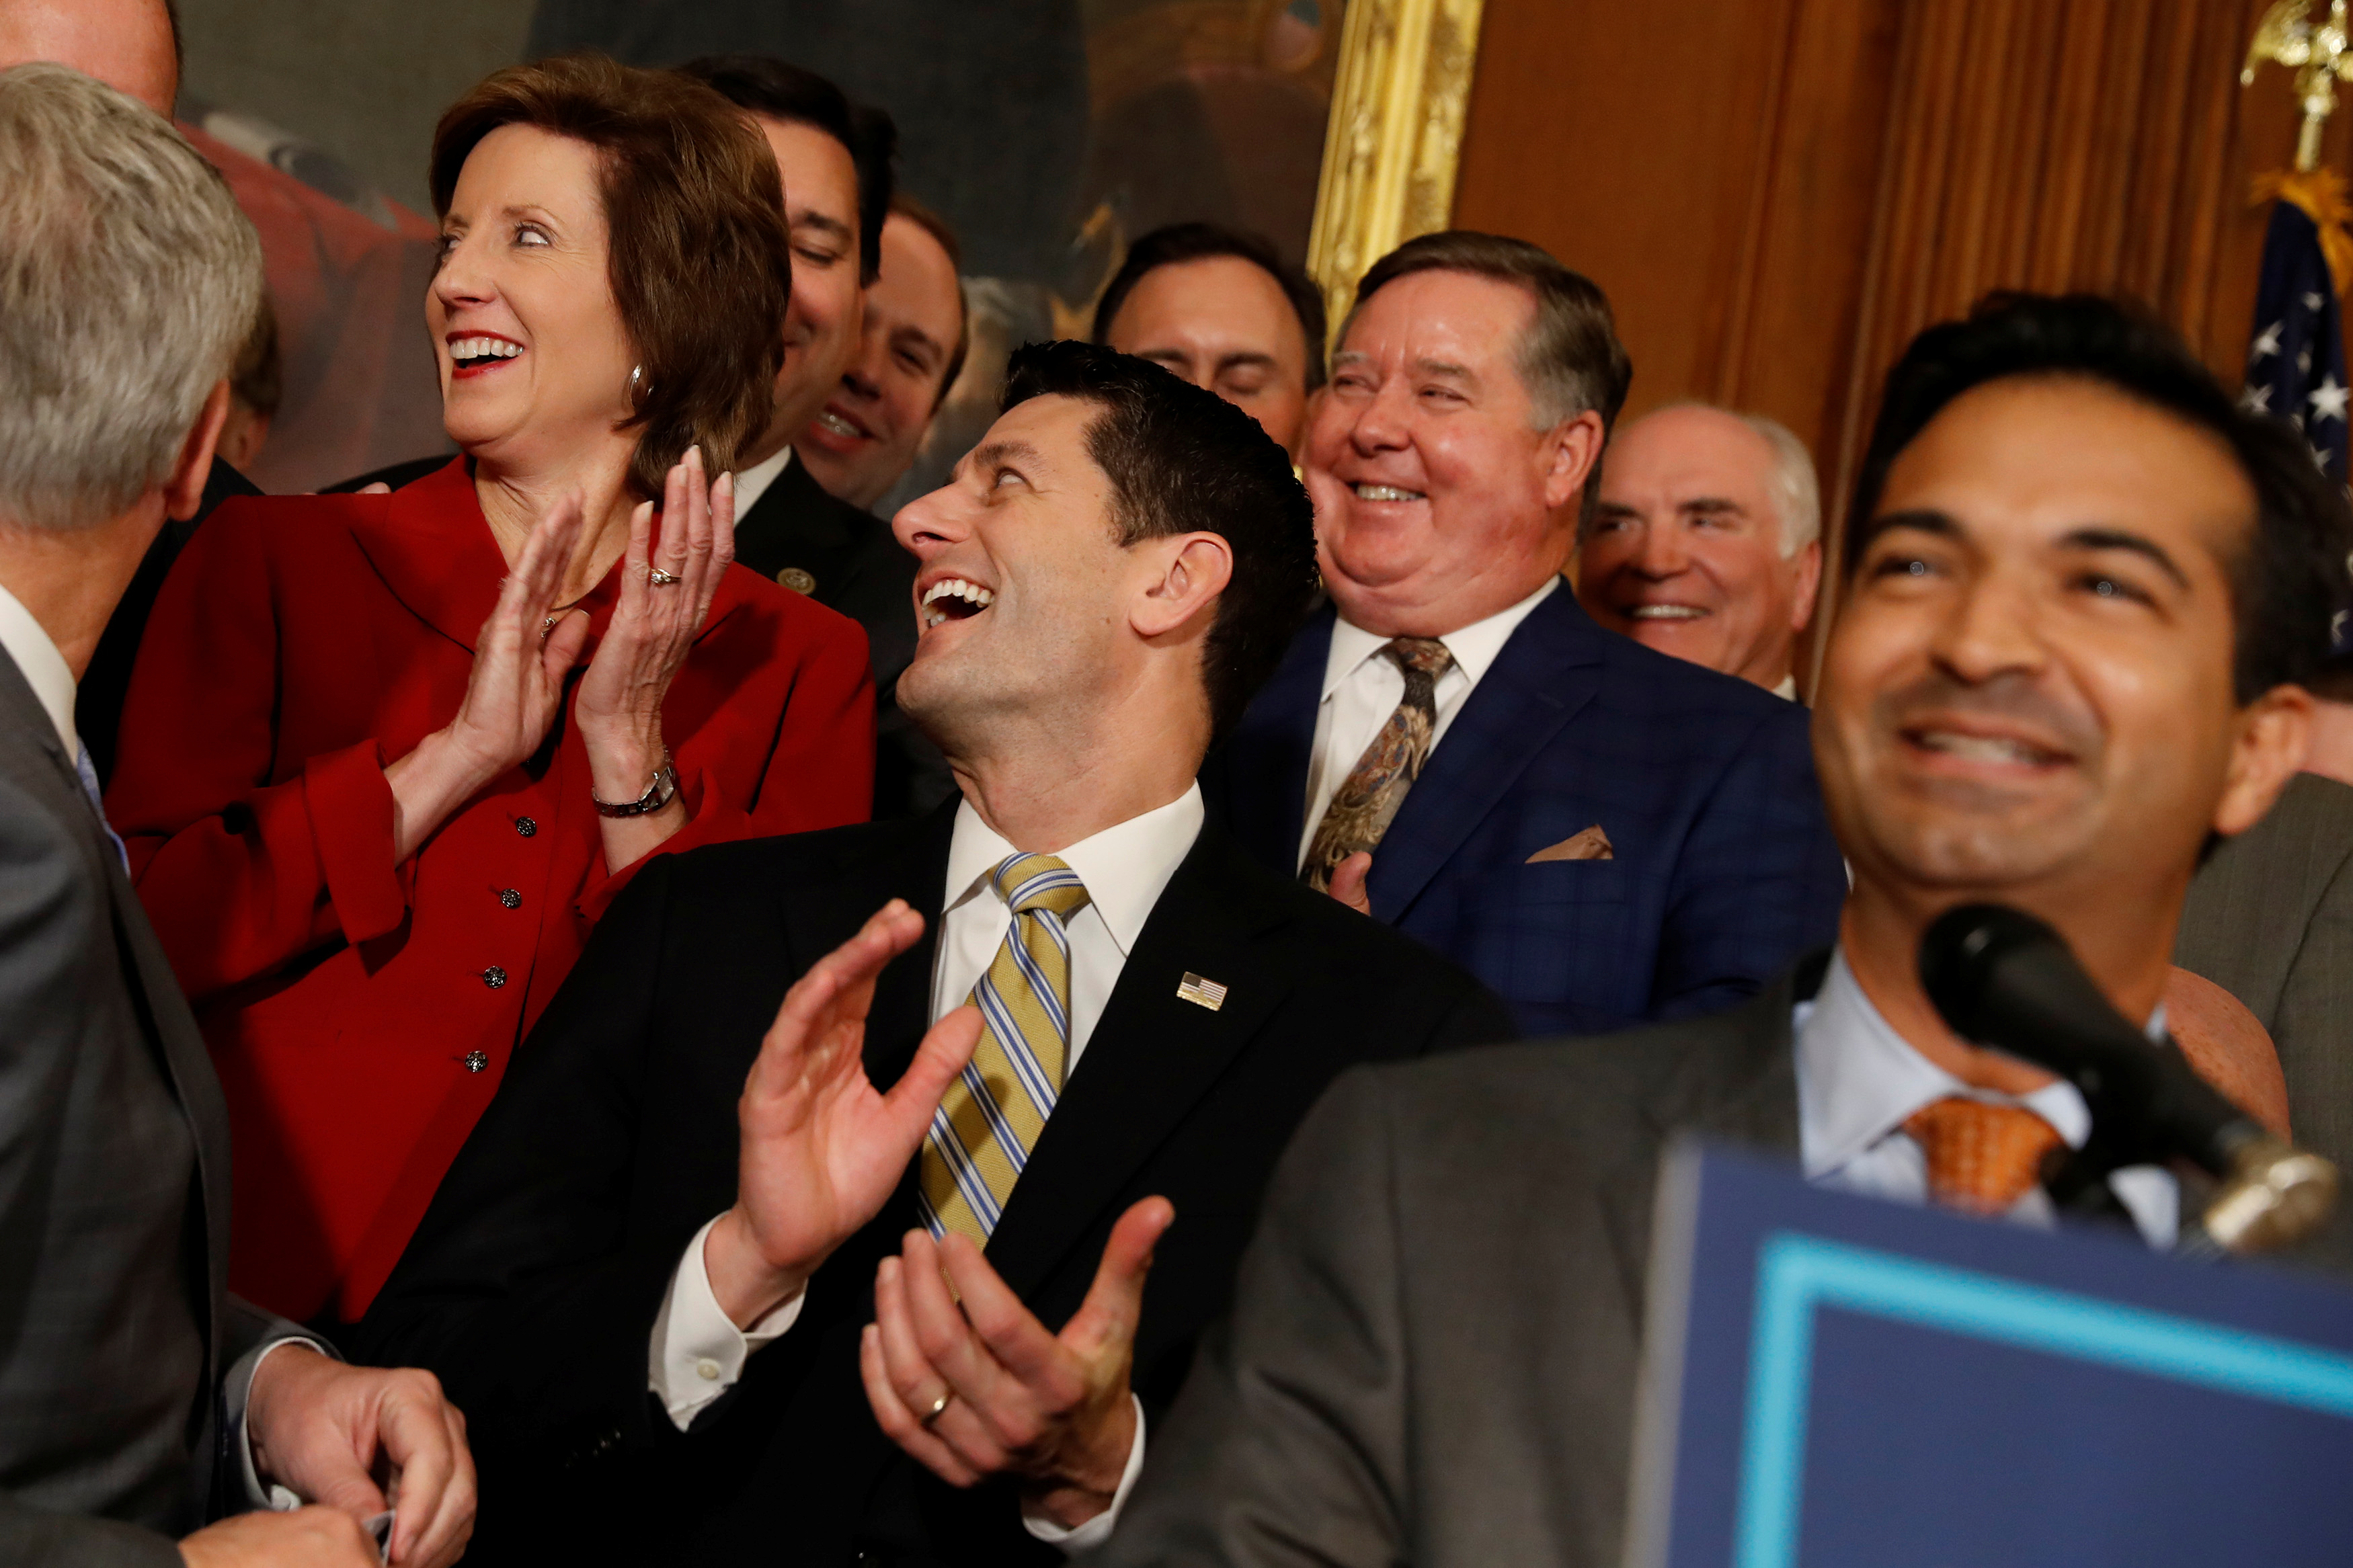 """House Republicans, including Speaker of the House Paul Ryan and Rep. Carlos Curbelo (R-FL), celebrate at a news conference announcing the passage of the """"Tax Cuts and Jobs Act"""" at the U.S. Capitol in Washington, U.S., November 16, 2017. REUTERS/Aaron P. Bernstein"""